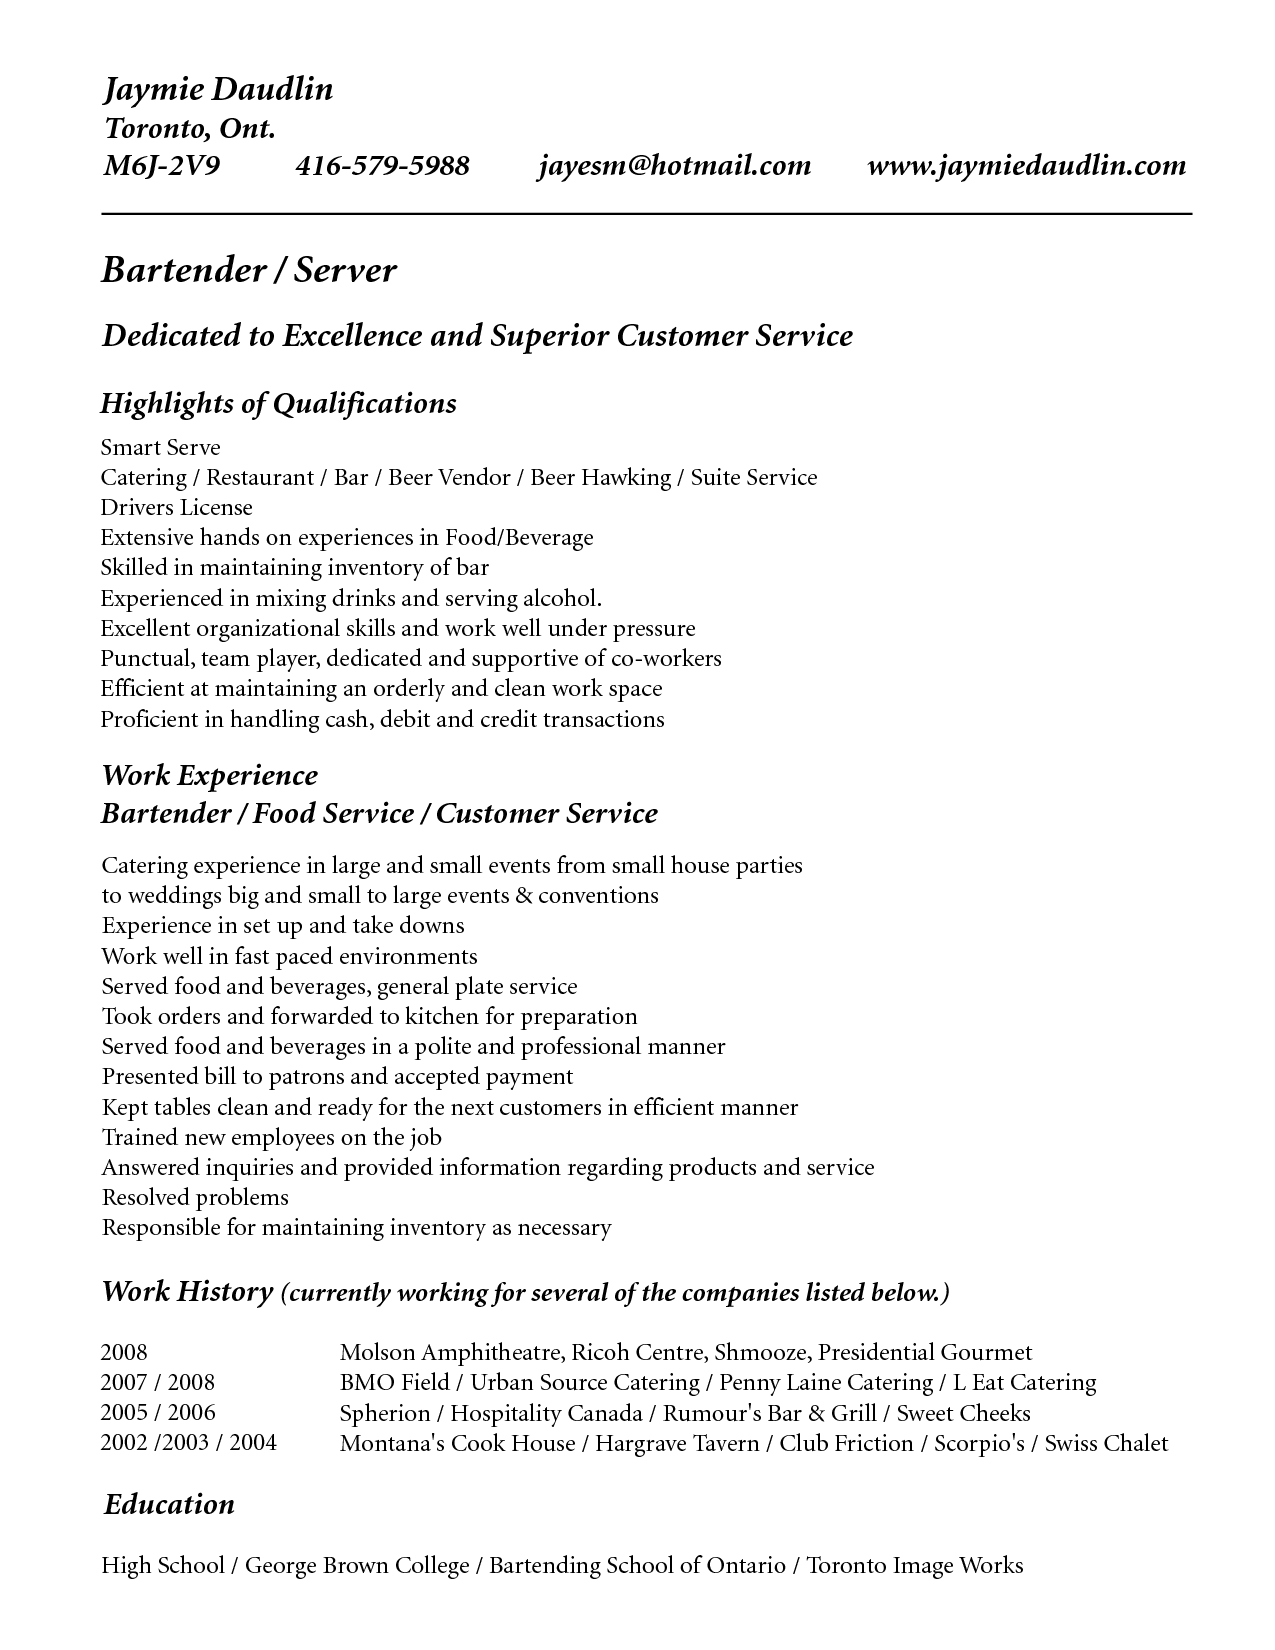 Bartender resume samples dawaydabrowa bartender resume samples thecheapjerseys Image collections